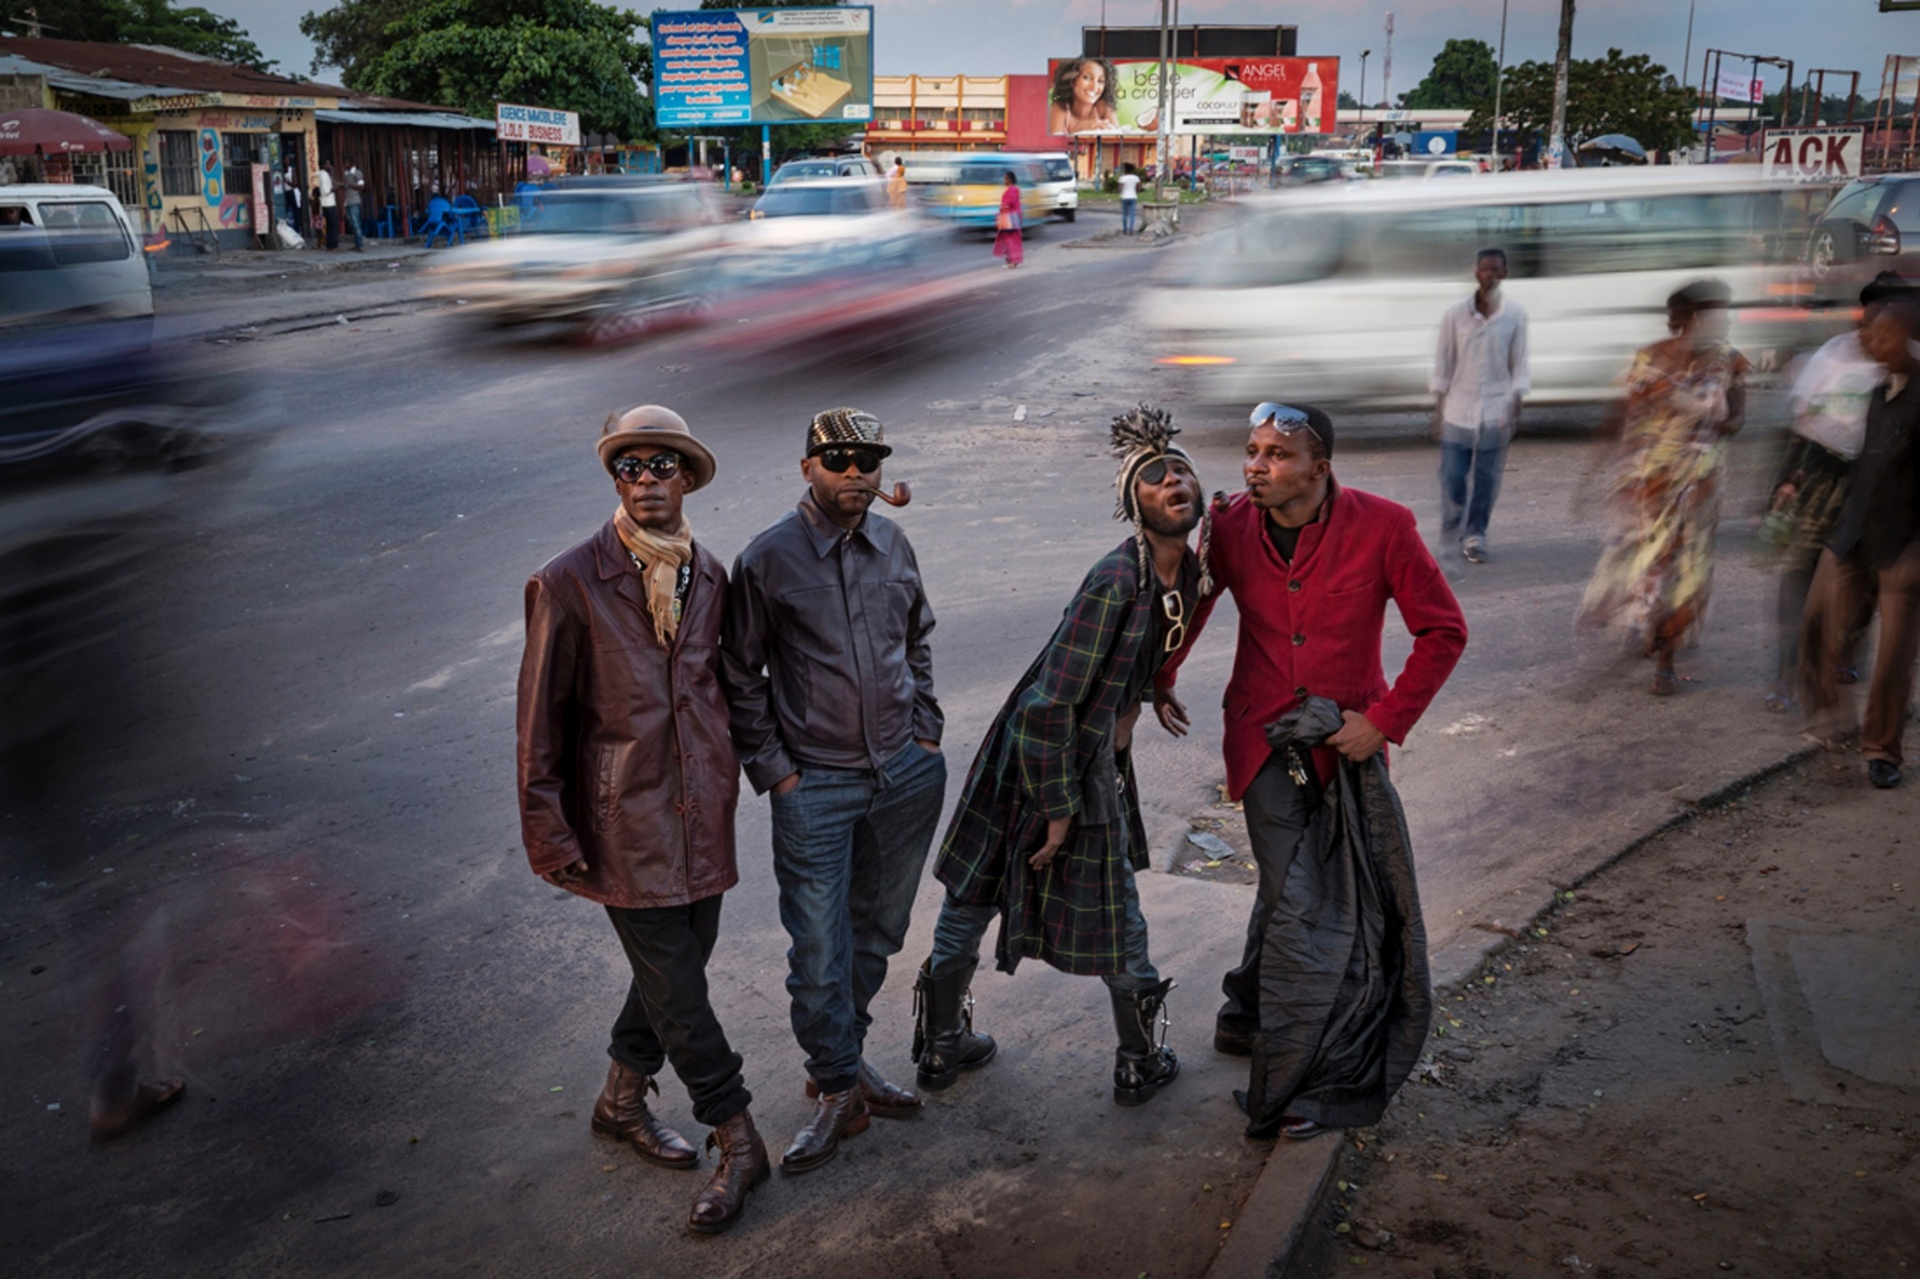 One Moment, commended, Johnny Haglund, Norway 'Les Sapeurs ', Kinshasa, Democratic Republic of Congo Photograph: Johnny Haglund/TPOTY